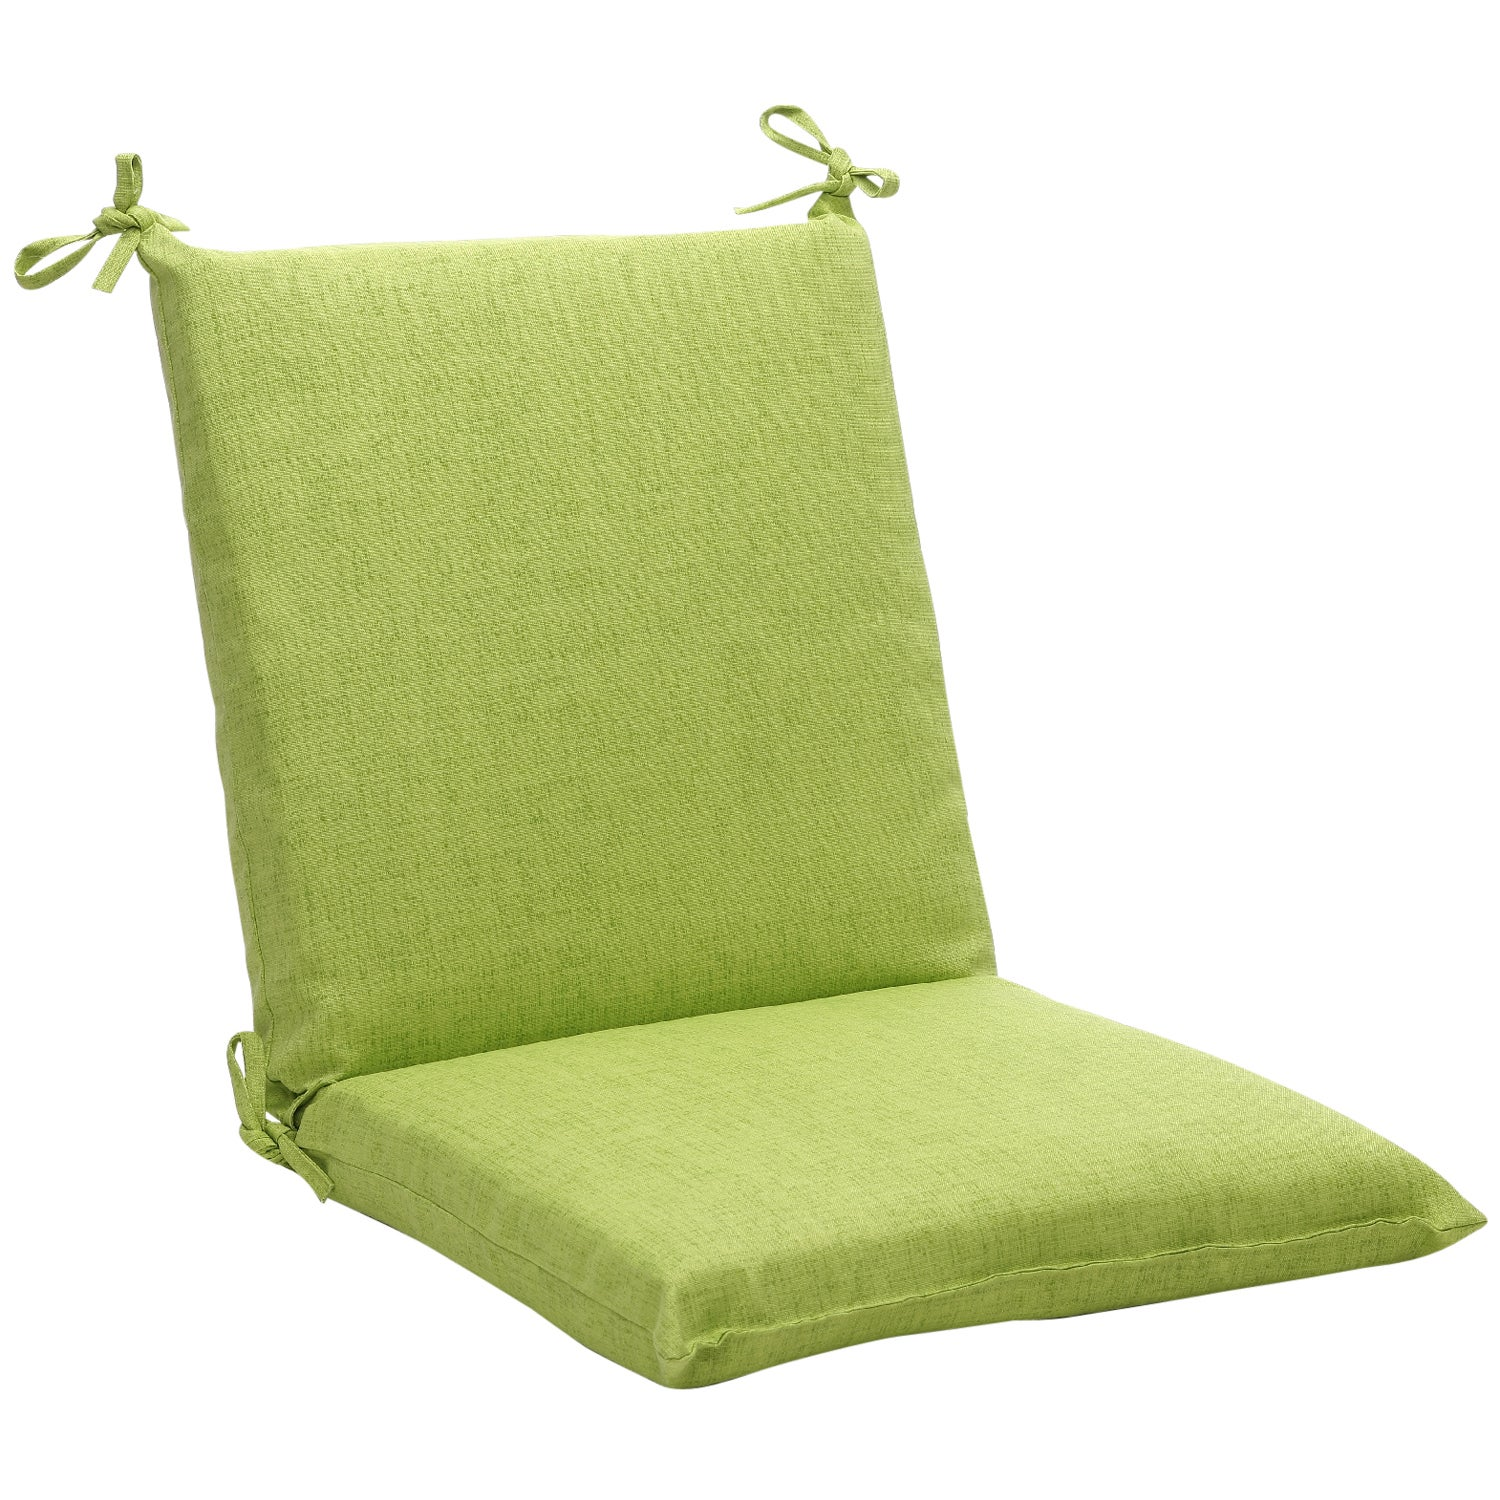 Squared solid green textured outdoor chair cushion for Garden furniture cushions